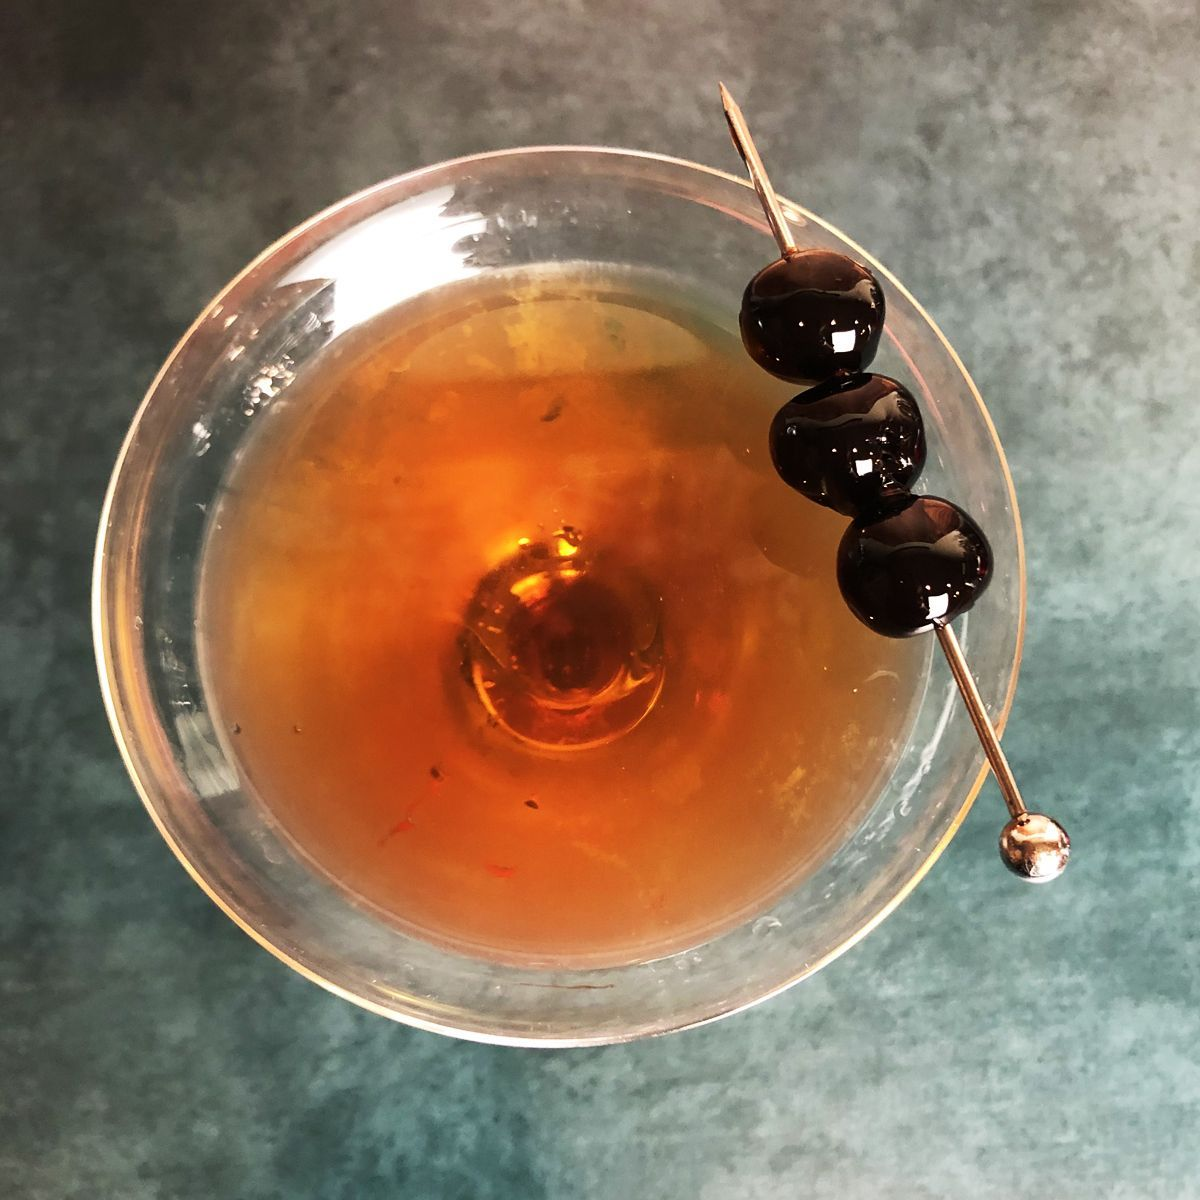 It's like a Manhattan, but it's made with Scotch instead of American Whiskey. Whiskey and vermouth, a match made in heaven. Or its closest annex, the Waldorf Astoria hotel bar.